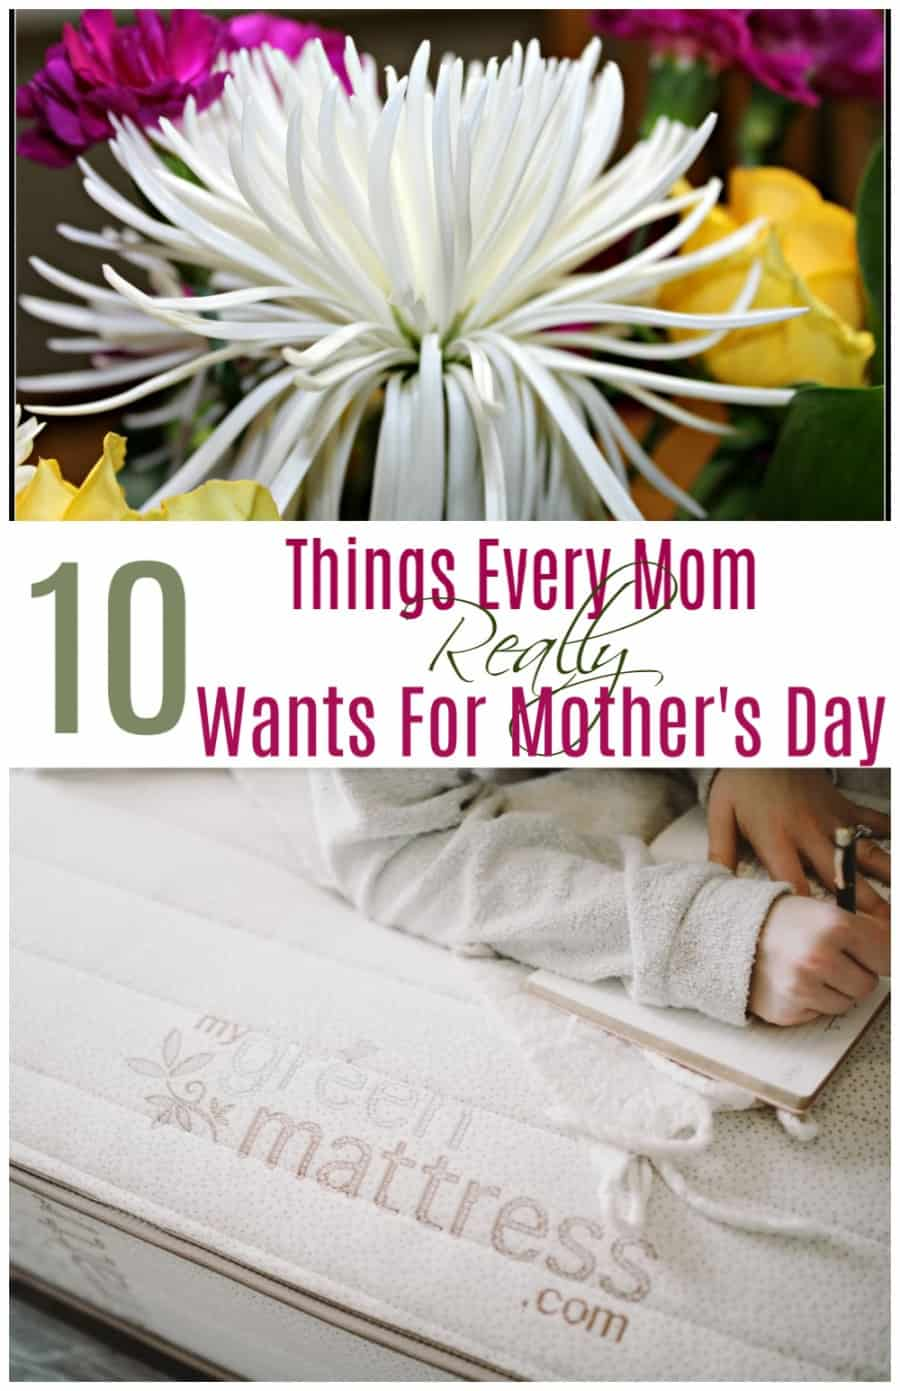 10 Things Every Mom REALLY Wants For Mother's Day